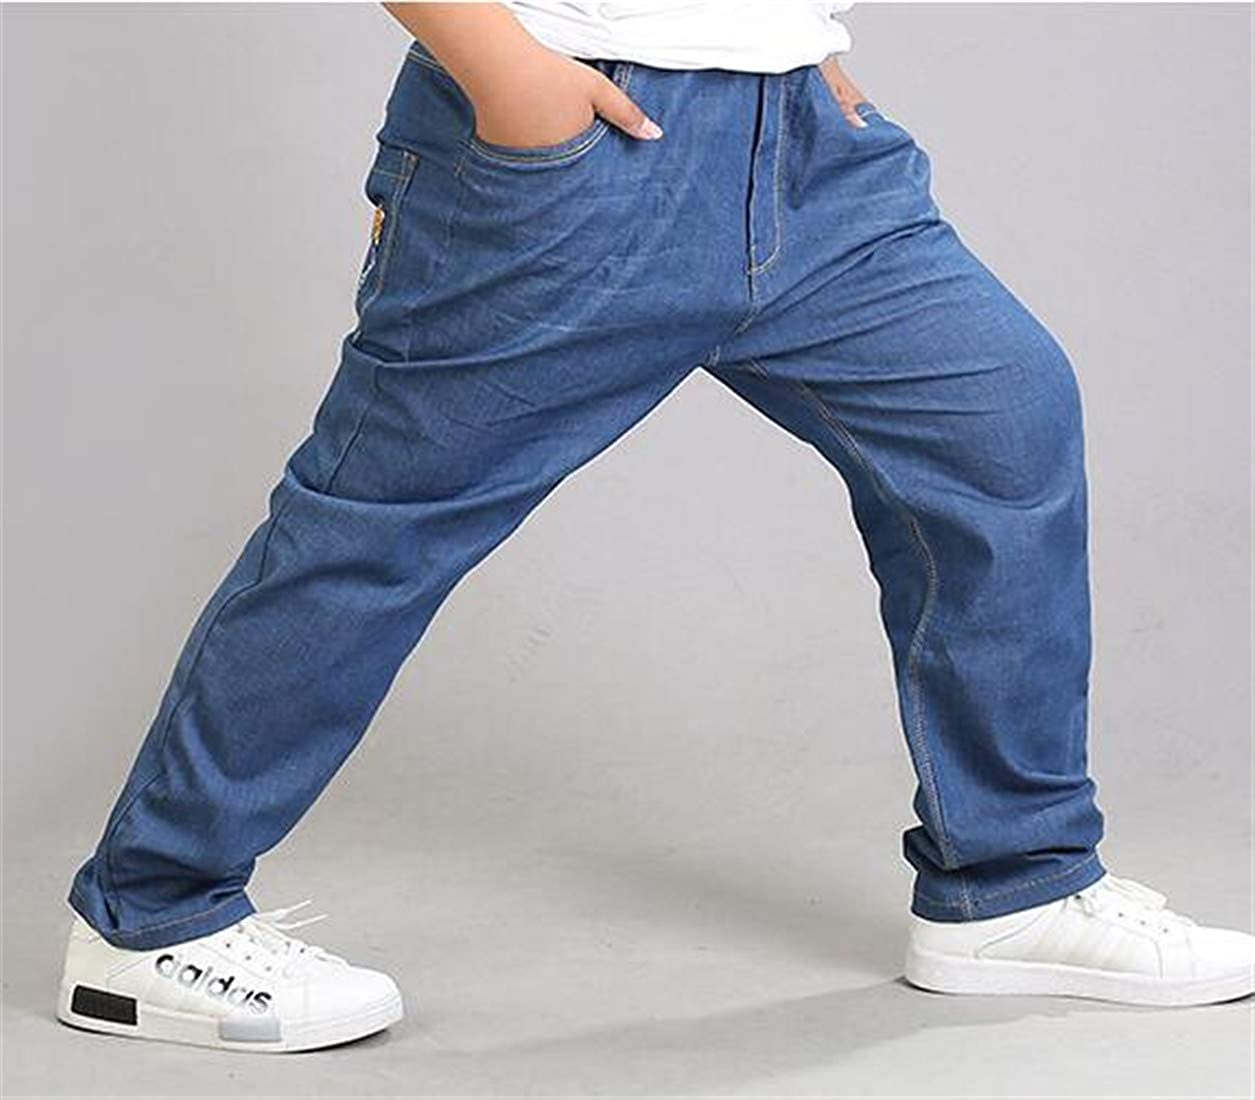 Macondoo Boys Cute Stretchy Jeans Trousers Plus Size Loose Denim Pants